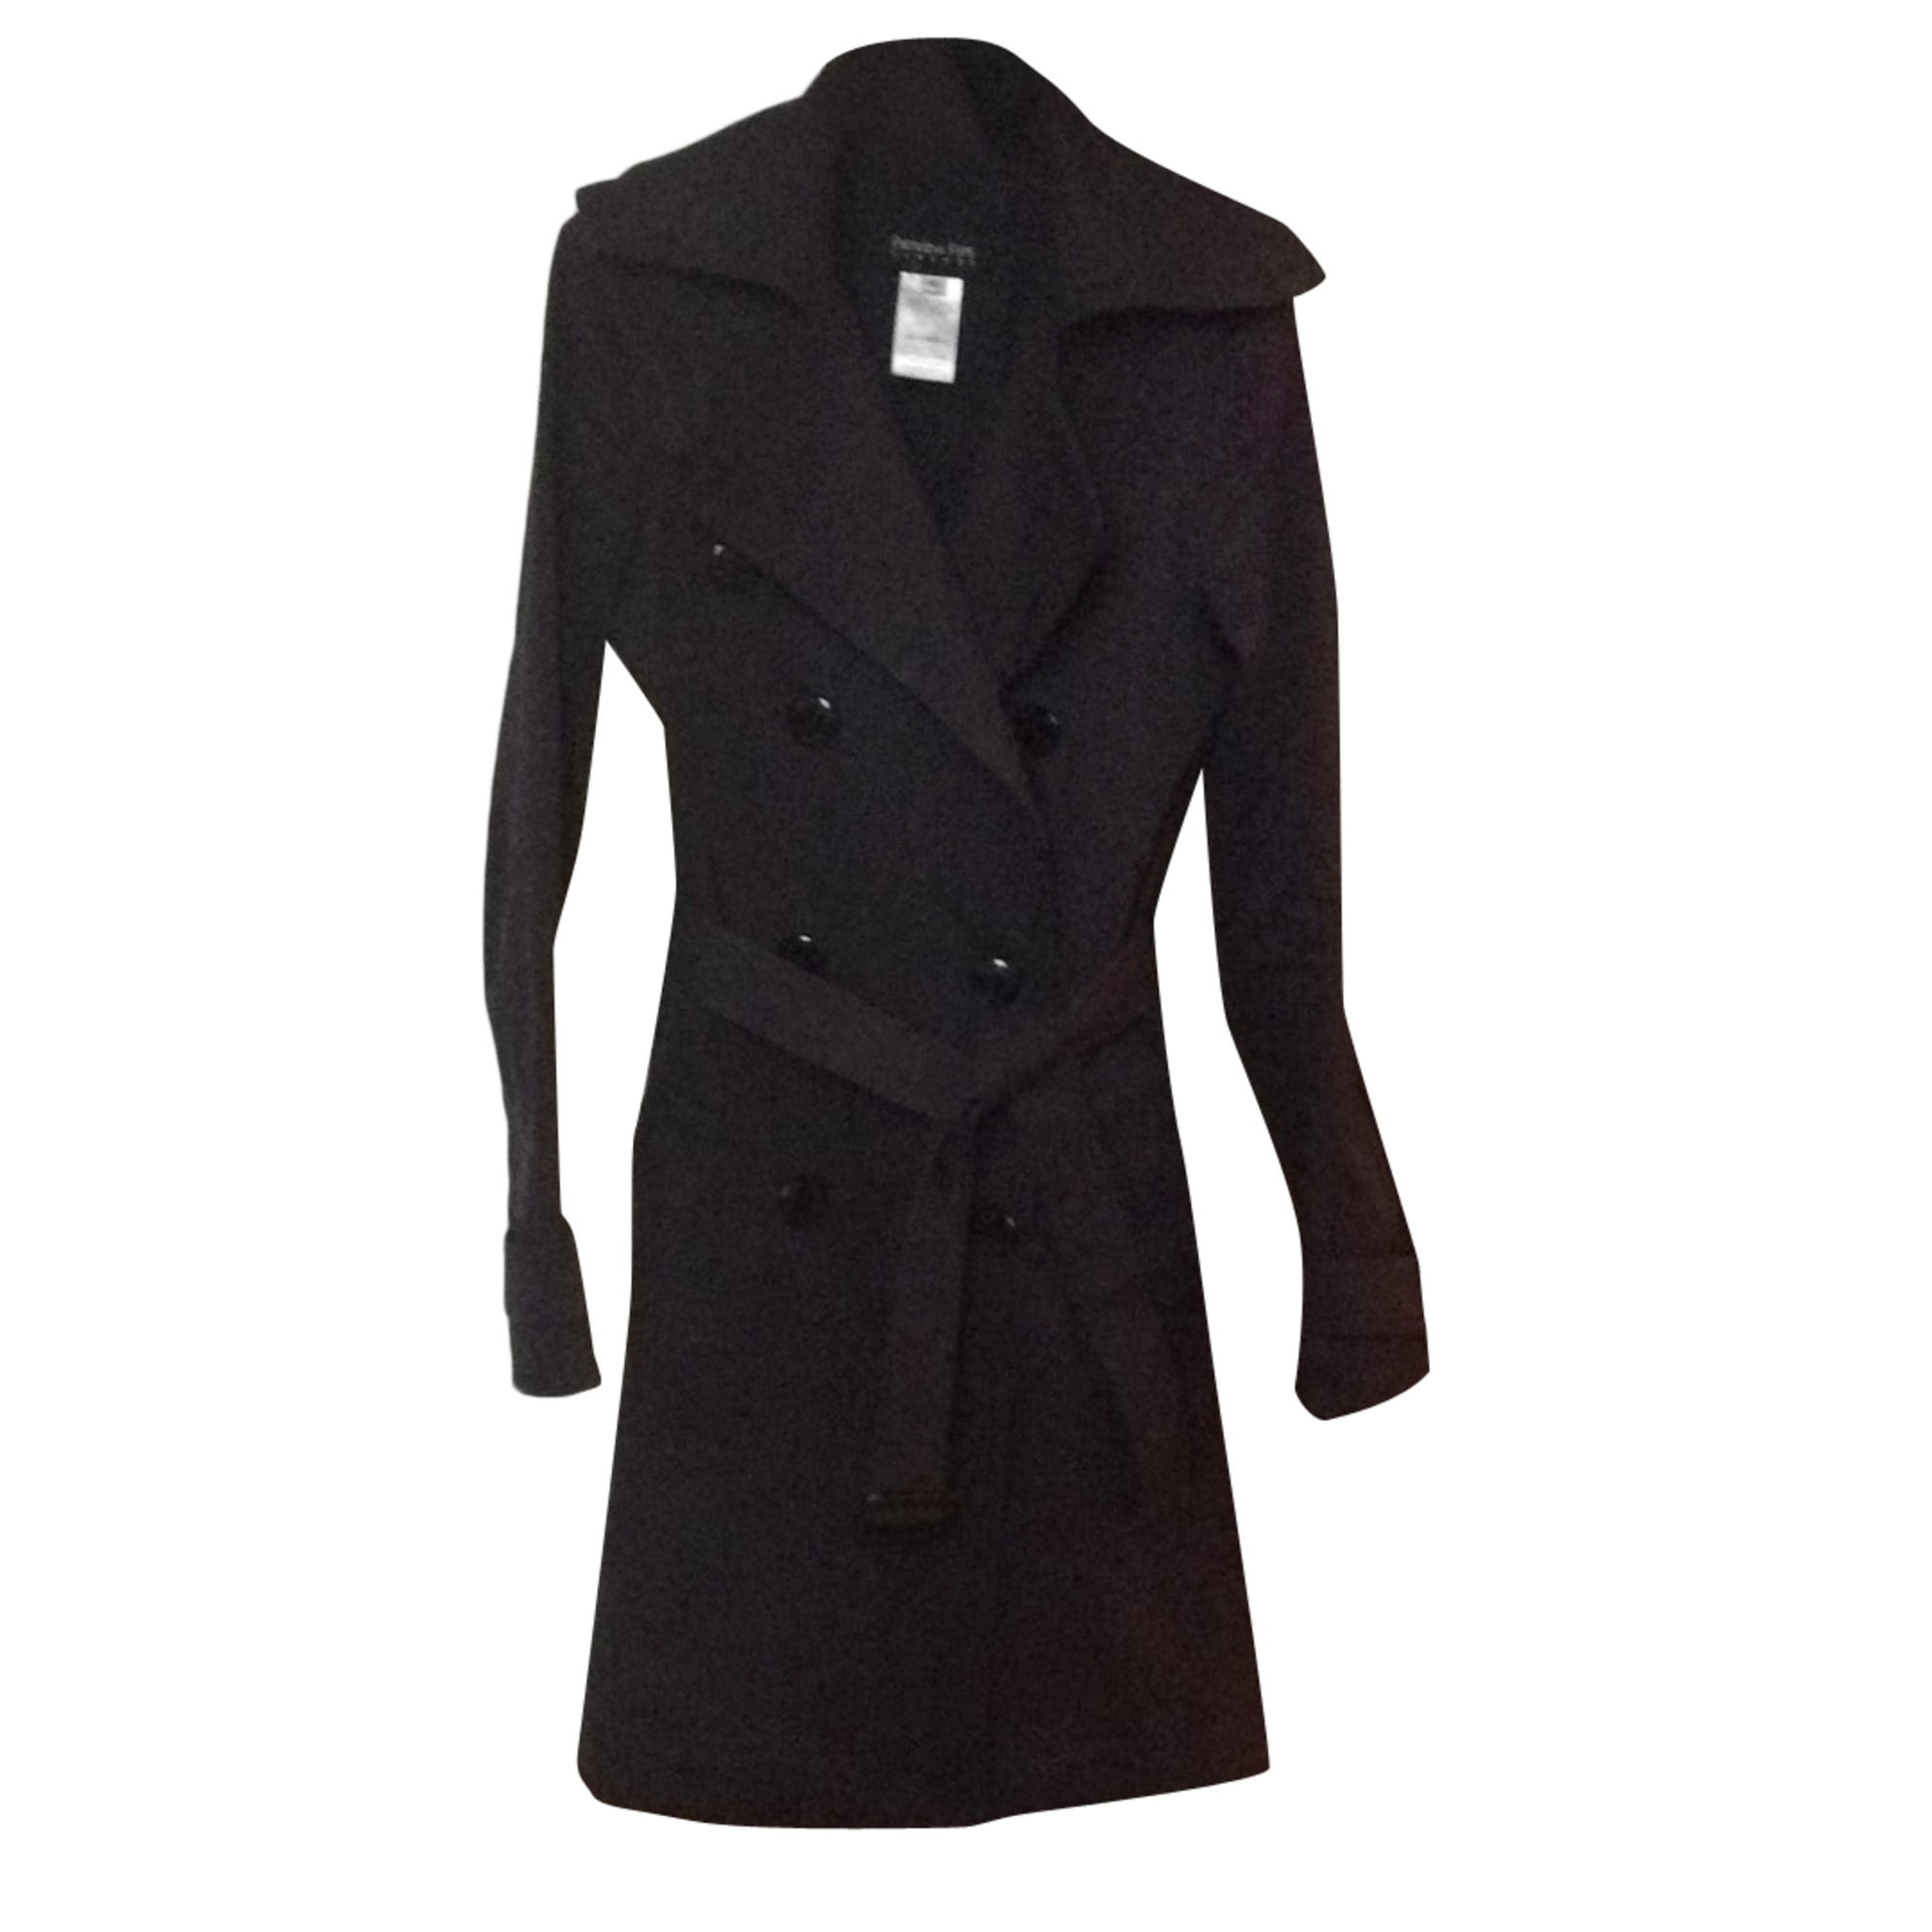 check out 9fb3a a2c97 Imperméable, trench PATRIZIA PEPE